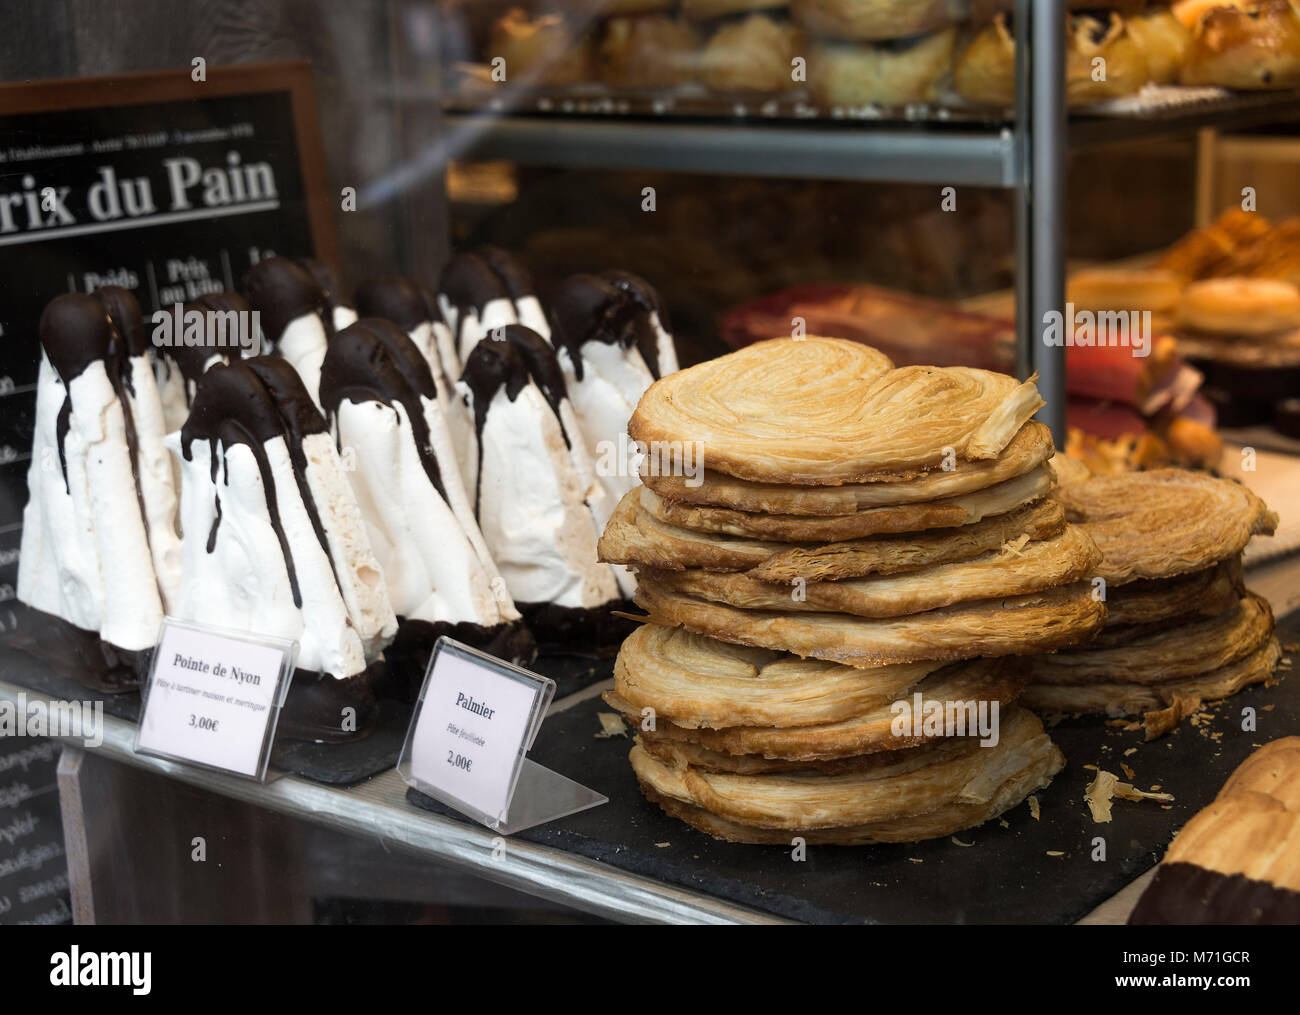 Beautiful Cakes and Pastries on Display in a Window of a Patisserie Bakery Shop in Morzine Haute Savoie Portes du - Stock Image